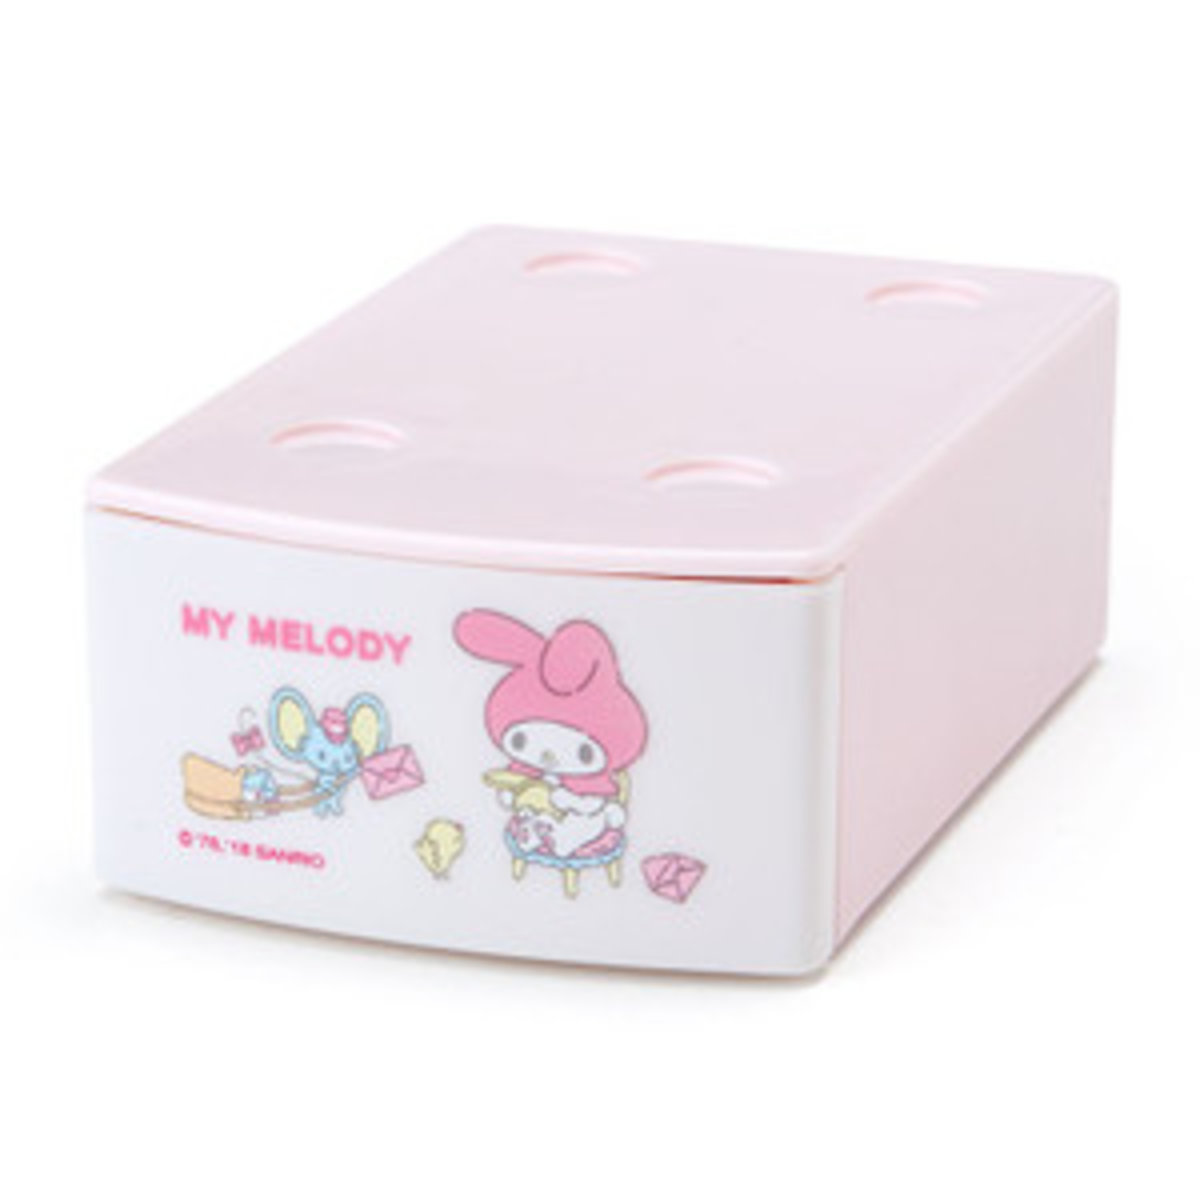 Sario My Melody Mini Stacking Case With Memo 20 Sheets Buy 2 Get Chicco Baby Nail Scissors Pink Massage Oil Hktvmall Online Shopping